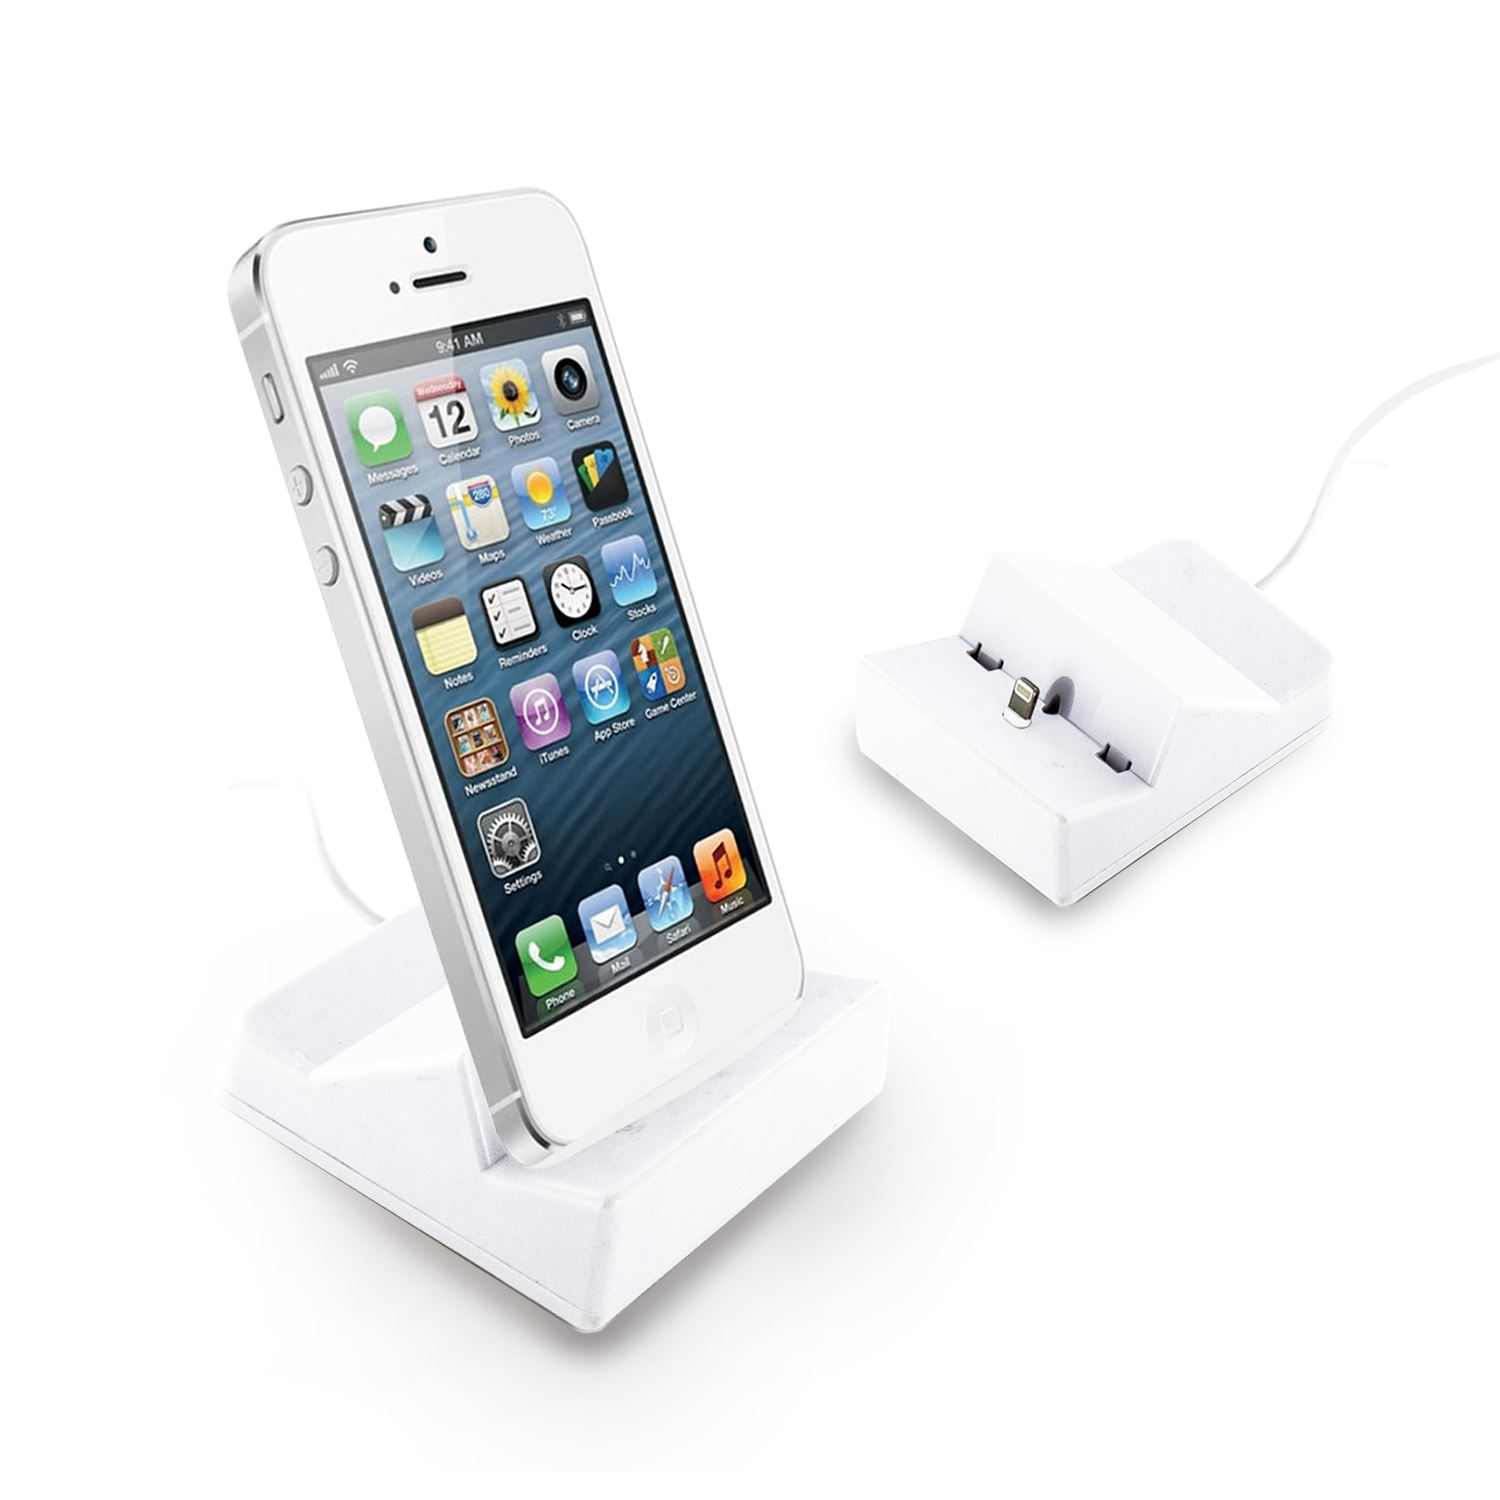 docking dock station stand usb sync cradle iphone 6 plus. Black Bedroom Furniture Sets. Home Design Ideas